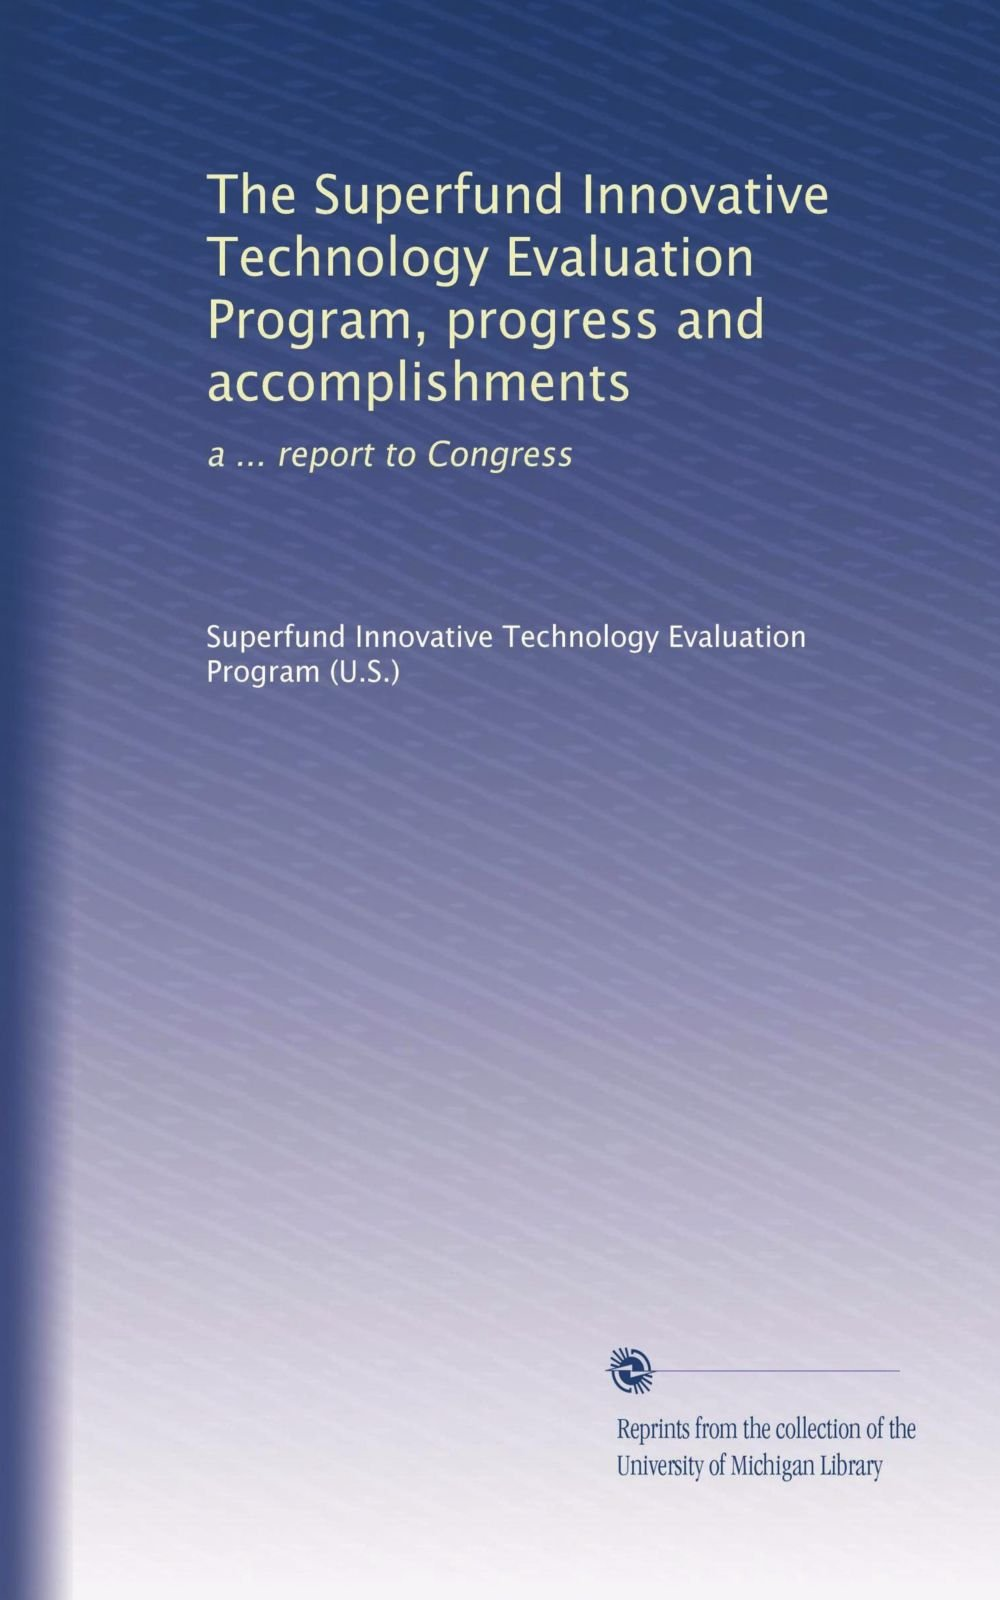 The Superfund Innovative Technology Evaluation Program, progress and accomplishments: a ... report to Congress ebook